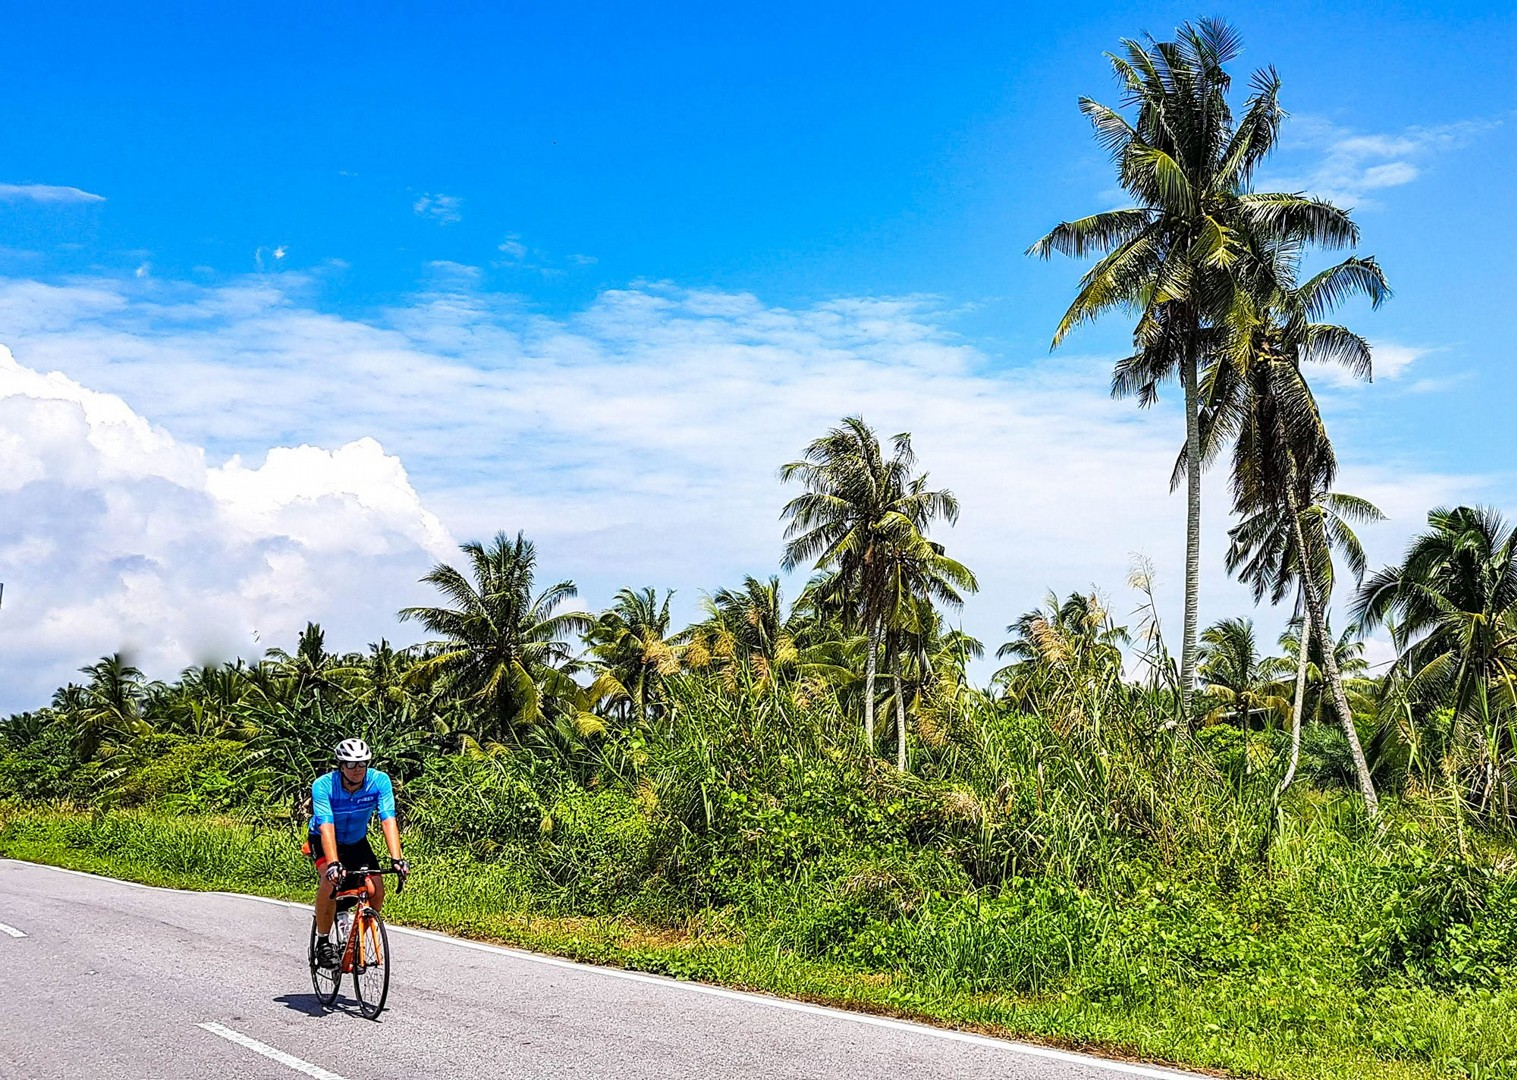 road-cycling-guided-borneo-long-haul-holiday.jpg - Borneo - Sarawak to Sabah - Guided Road Cycling Holiday - Road Cycling